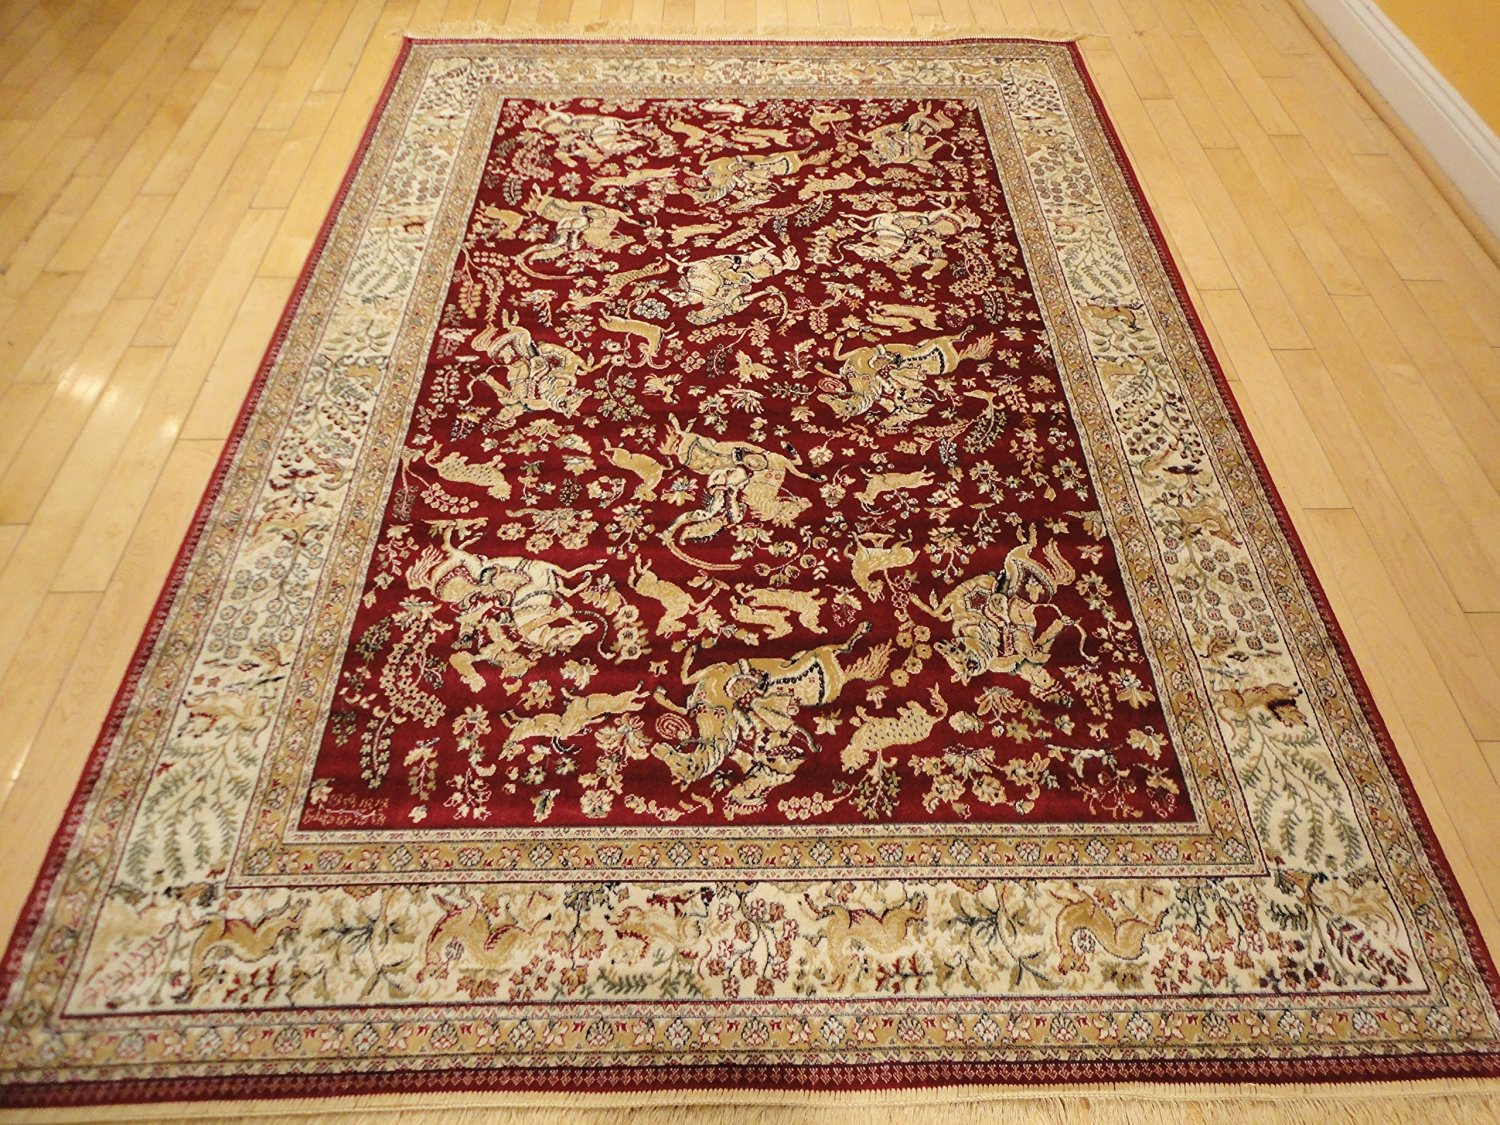 Silk Area Rug Large Rugs 8x12 Red Traditional Floor Carpet High End Animal Print